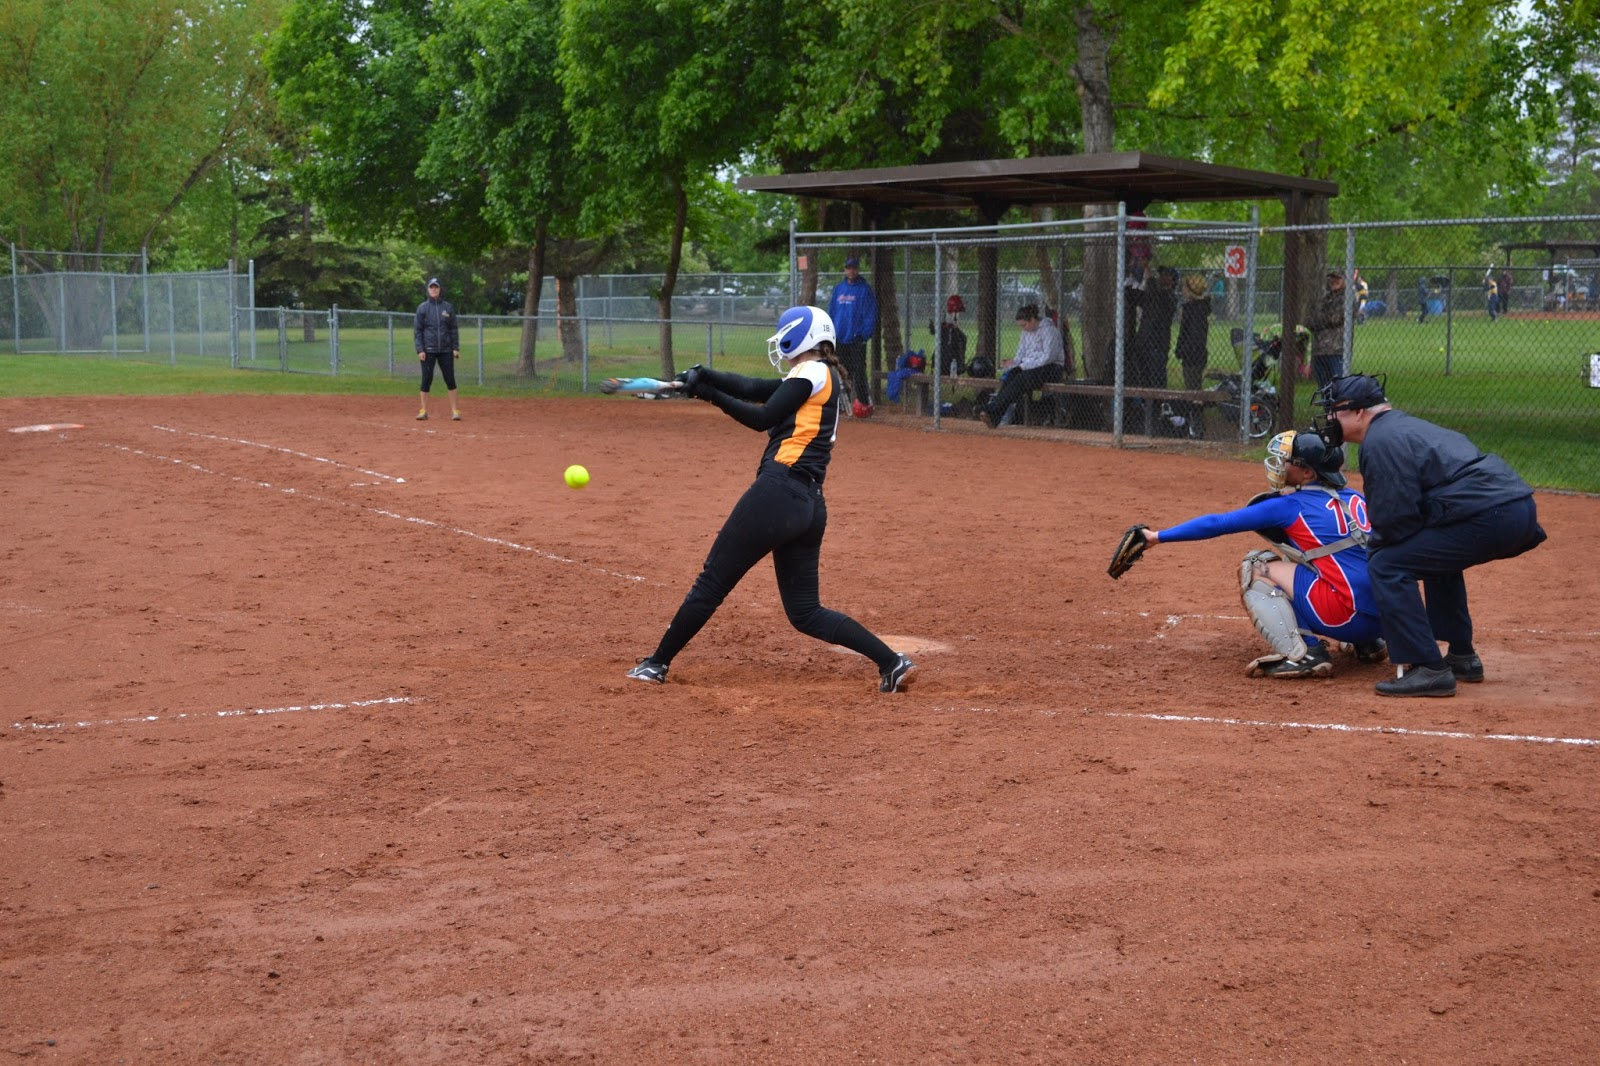 sports psych evaluation on we are We are a multidisciplinary psychology and counseling practice serving children, adolescents, young adults, and parents in the greater phoenix area our practice is comprised of licensed psychologists, certified school psychologists, licensed professional counselors, and licensed marriage and family therapists.